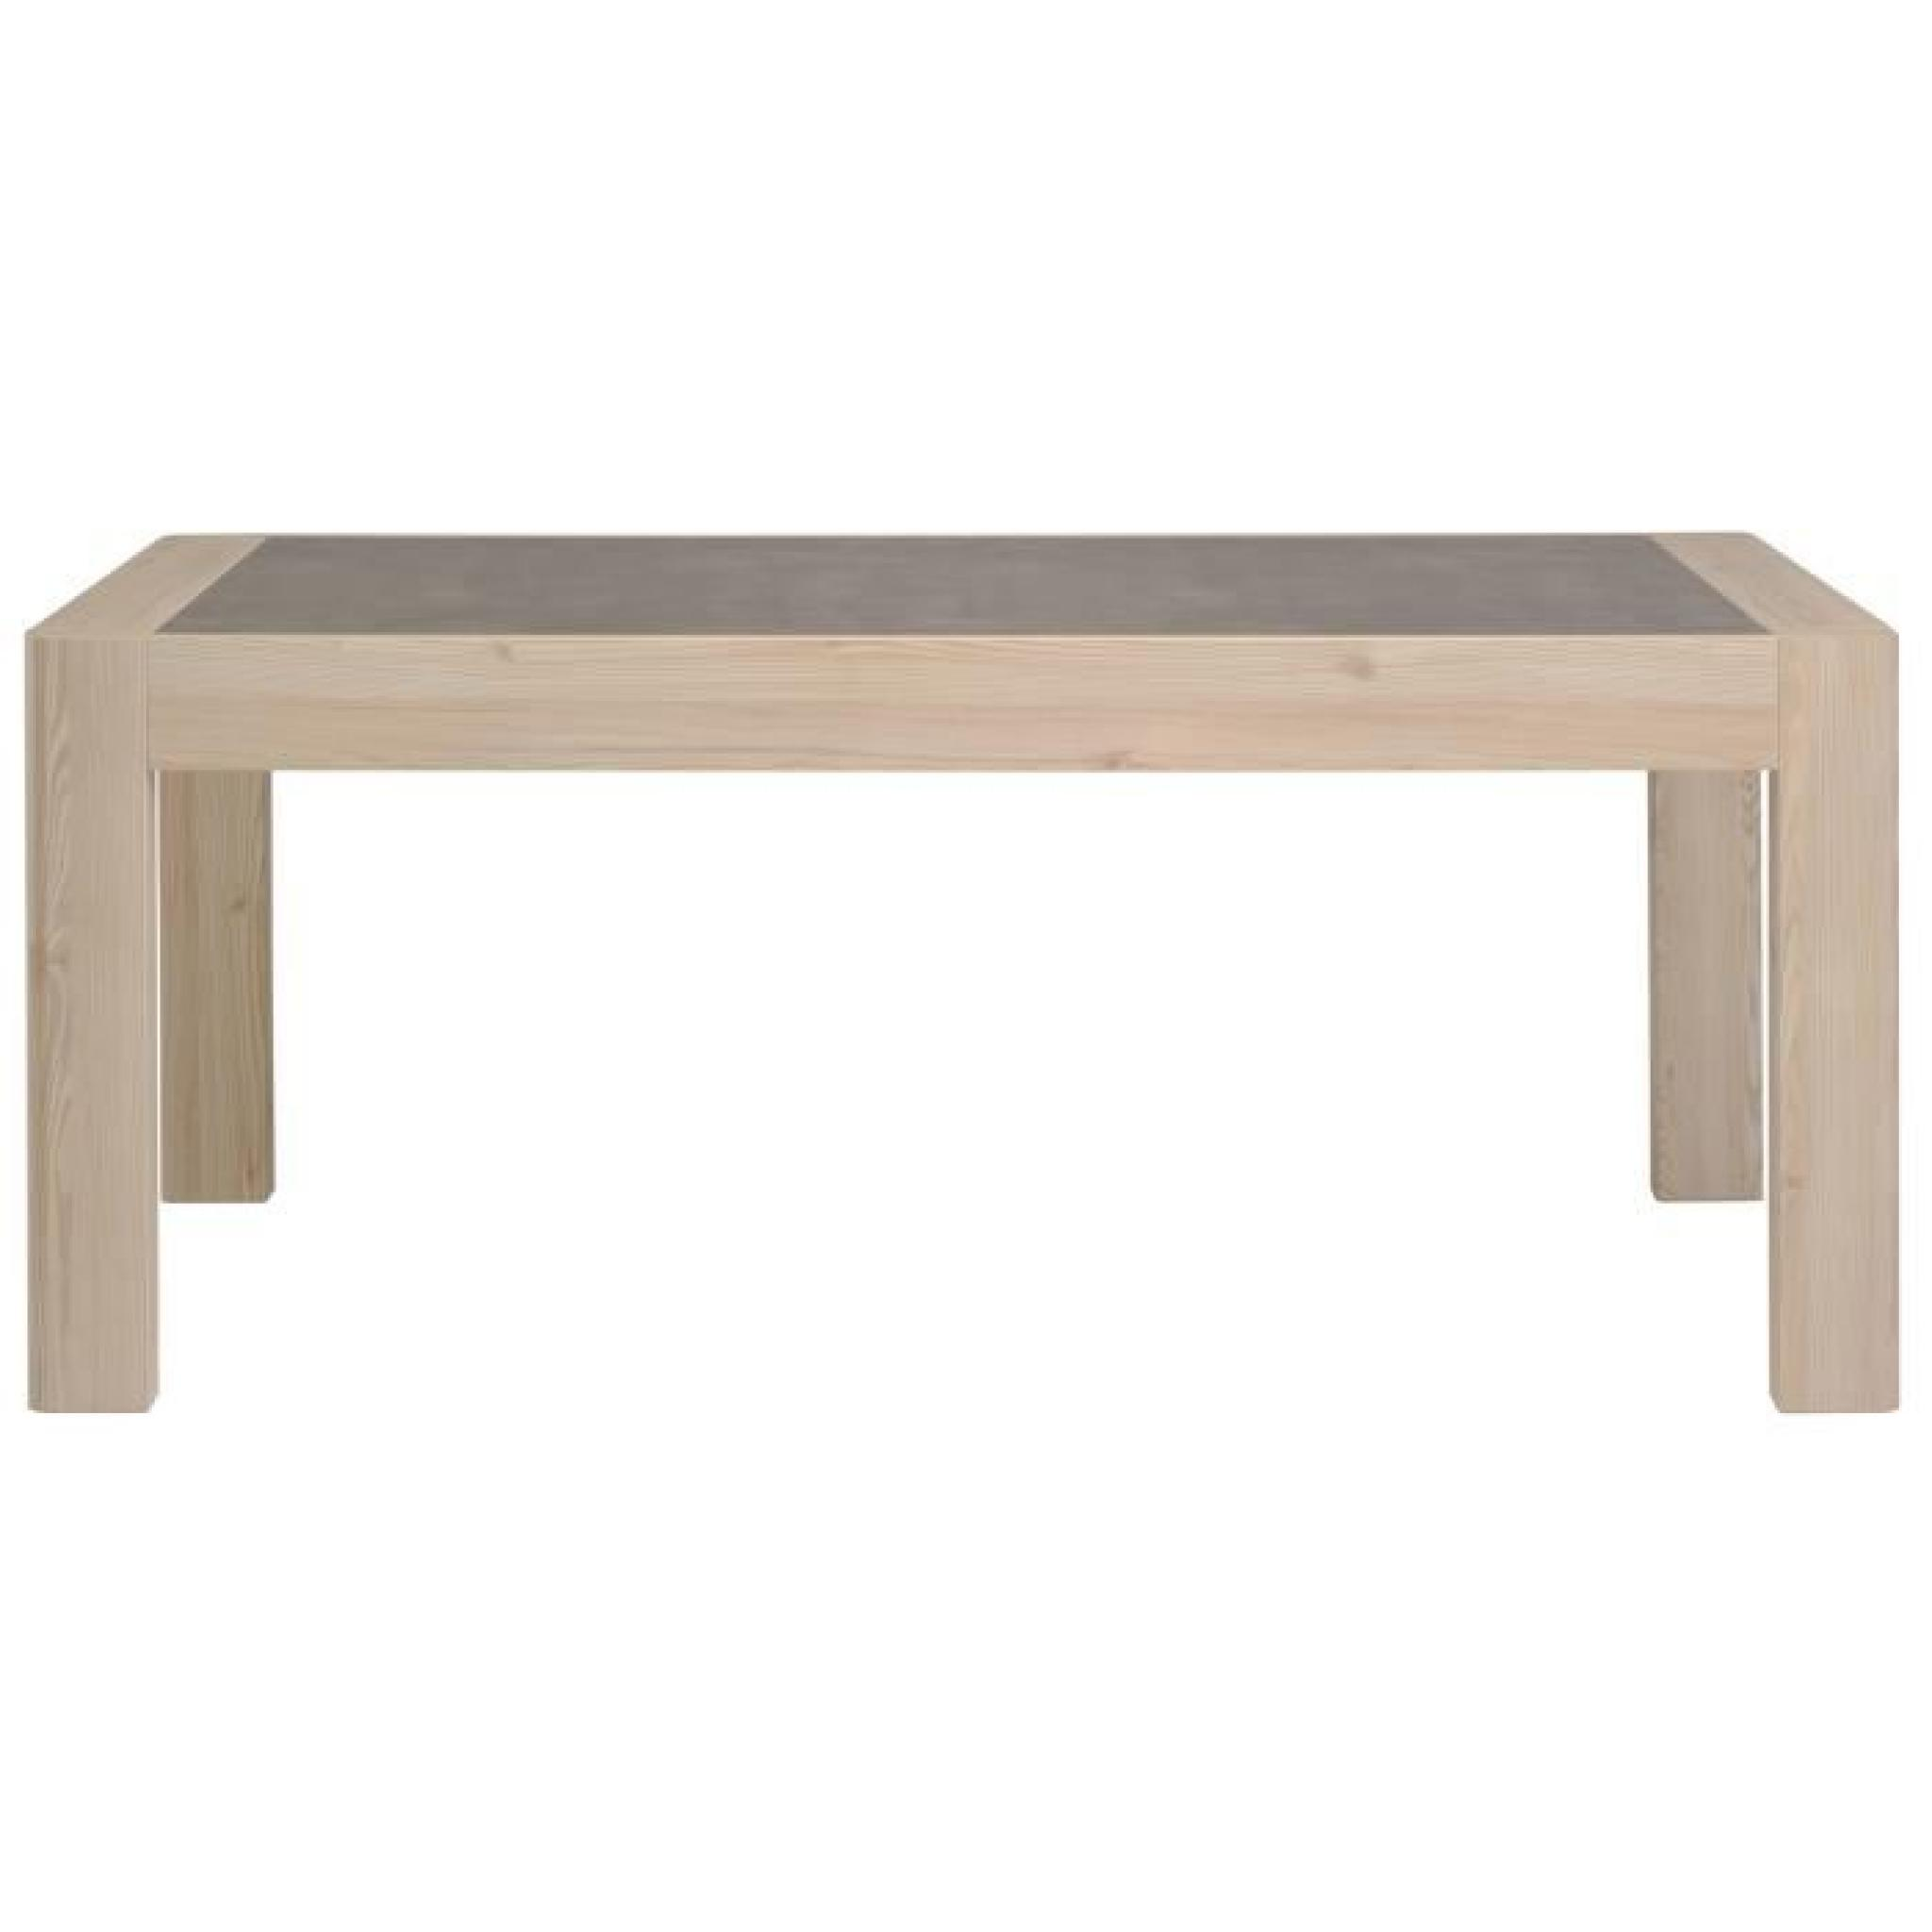 Table chene clair avec rallonge fabulous with table chene - Table chene clair avec rallonge ...